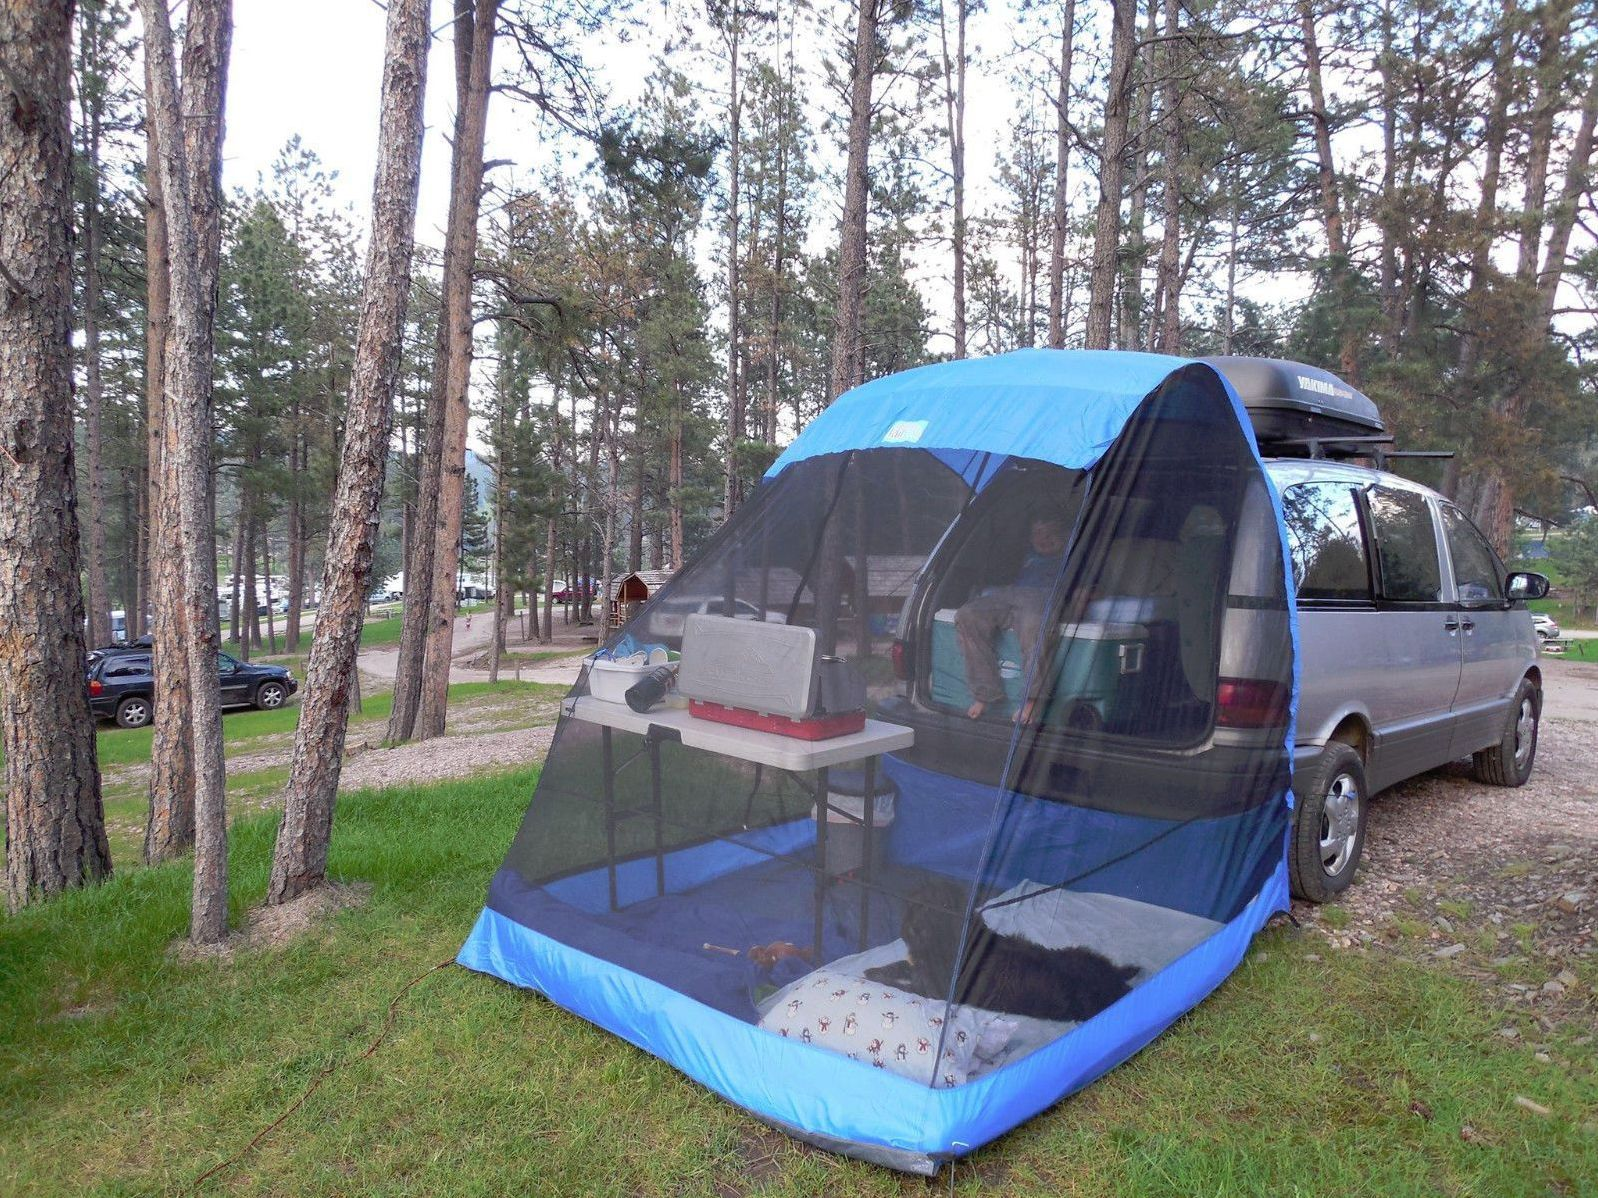 Pin by Motorian on RV Renovation Ideas Suv camping, Tent